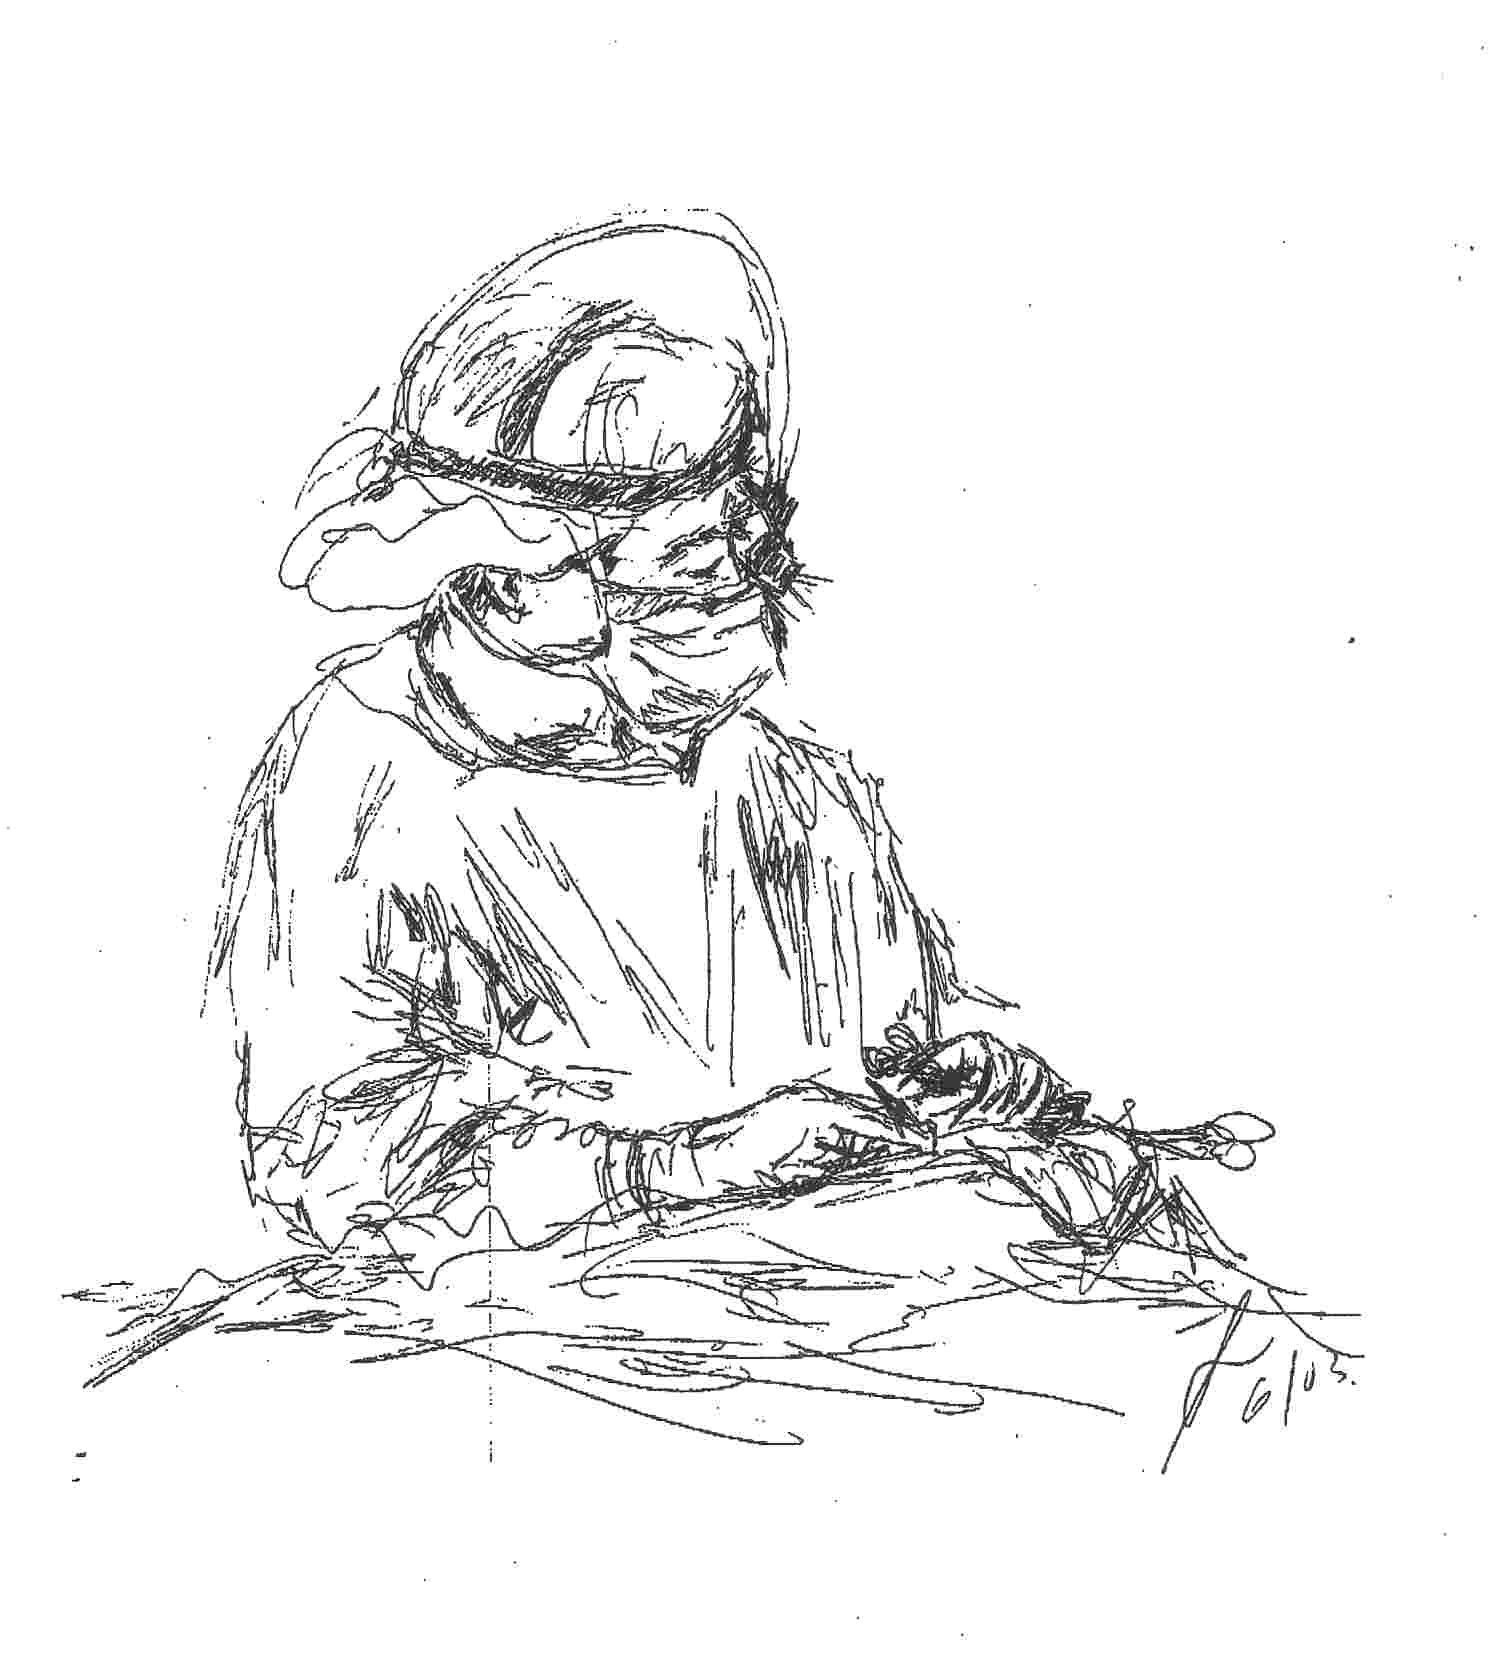 a surgeon s sketch of surgeon gilbertleemd changes about Surgical Clip Art a surgeon s sketch of surgeon gilbertleemd